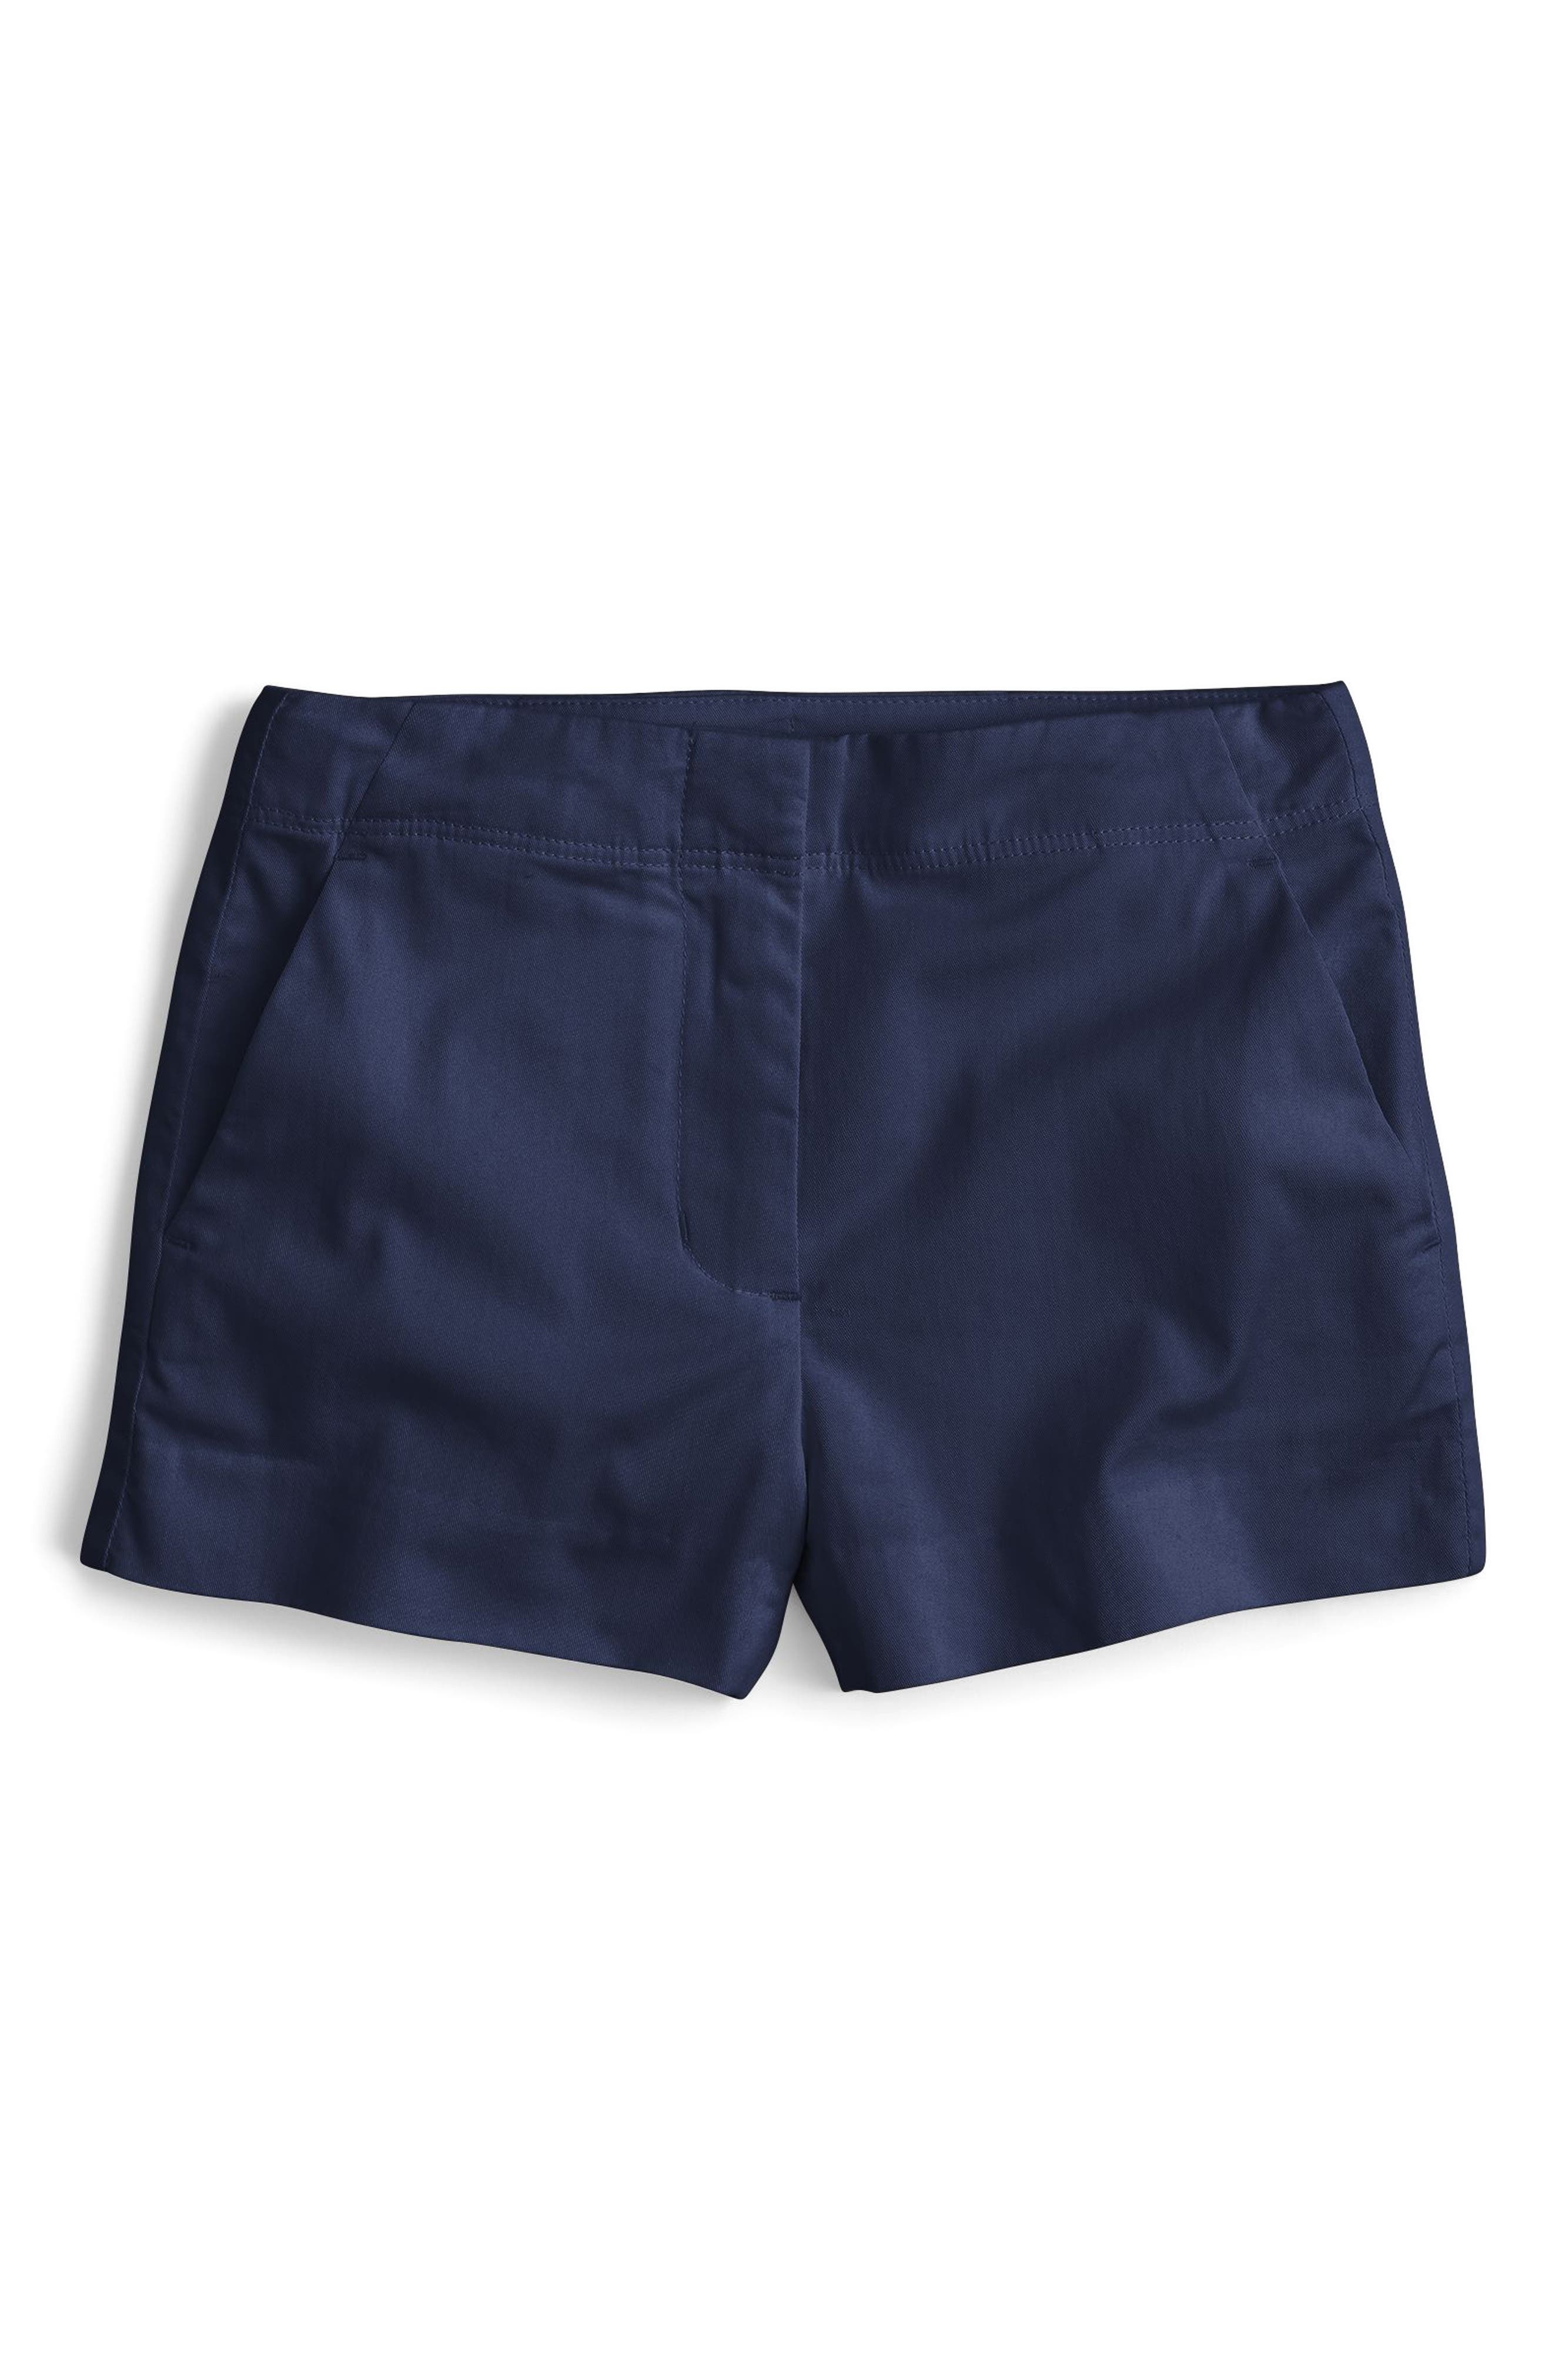 Frankie Stretch Cotton Shorts,                             Main thumbnail 1, color,                             403